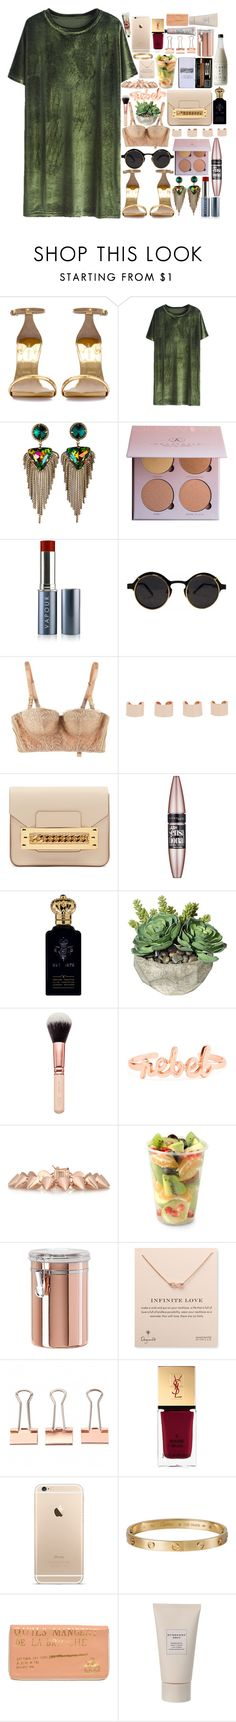 """""""WinterDress"""" by dzchocolatess ❤ liked on Polyvore featuring Zara, DANNIJO, Vapour Organic Beauty, STELLA McCARTNEY, Maison Margiela, Sophie Hulme, Maybelline, Clive Christian, Eddie Borgo and Aroma"""